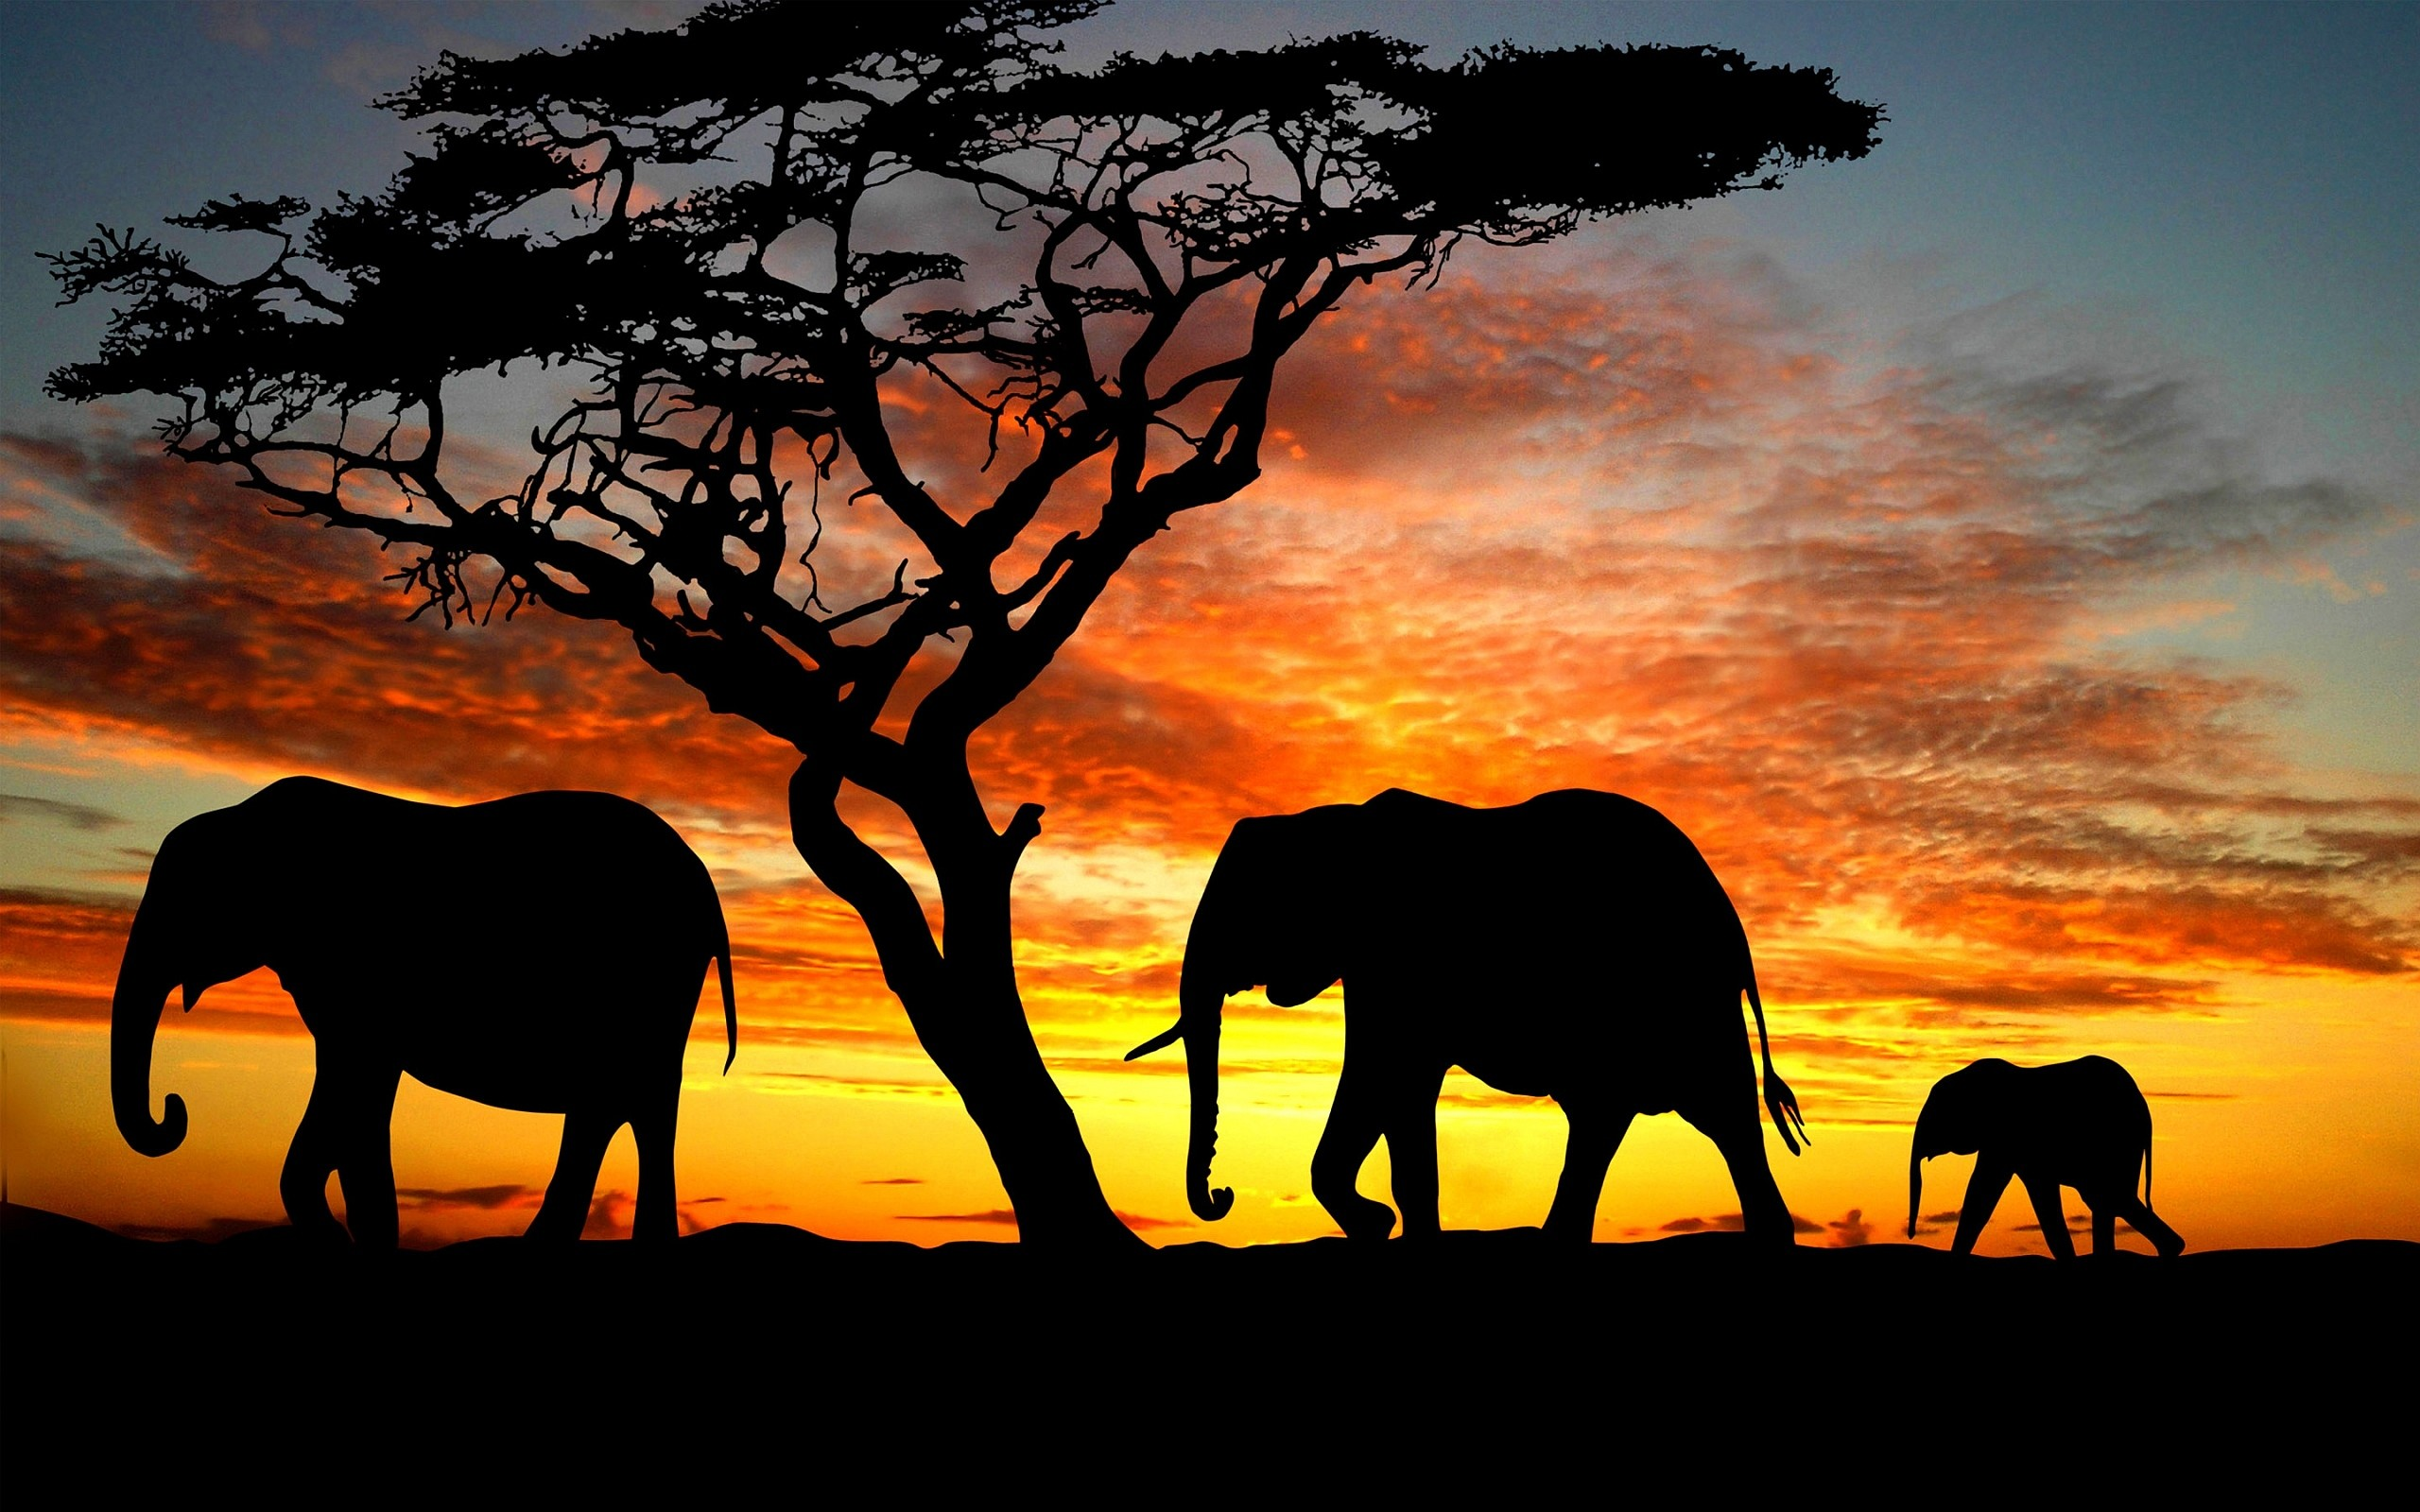 Cute Elephant Cartoon Wallpapers Baby Elephant Wallpaper 66 Images